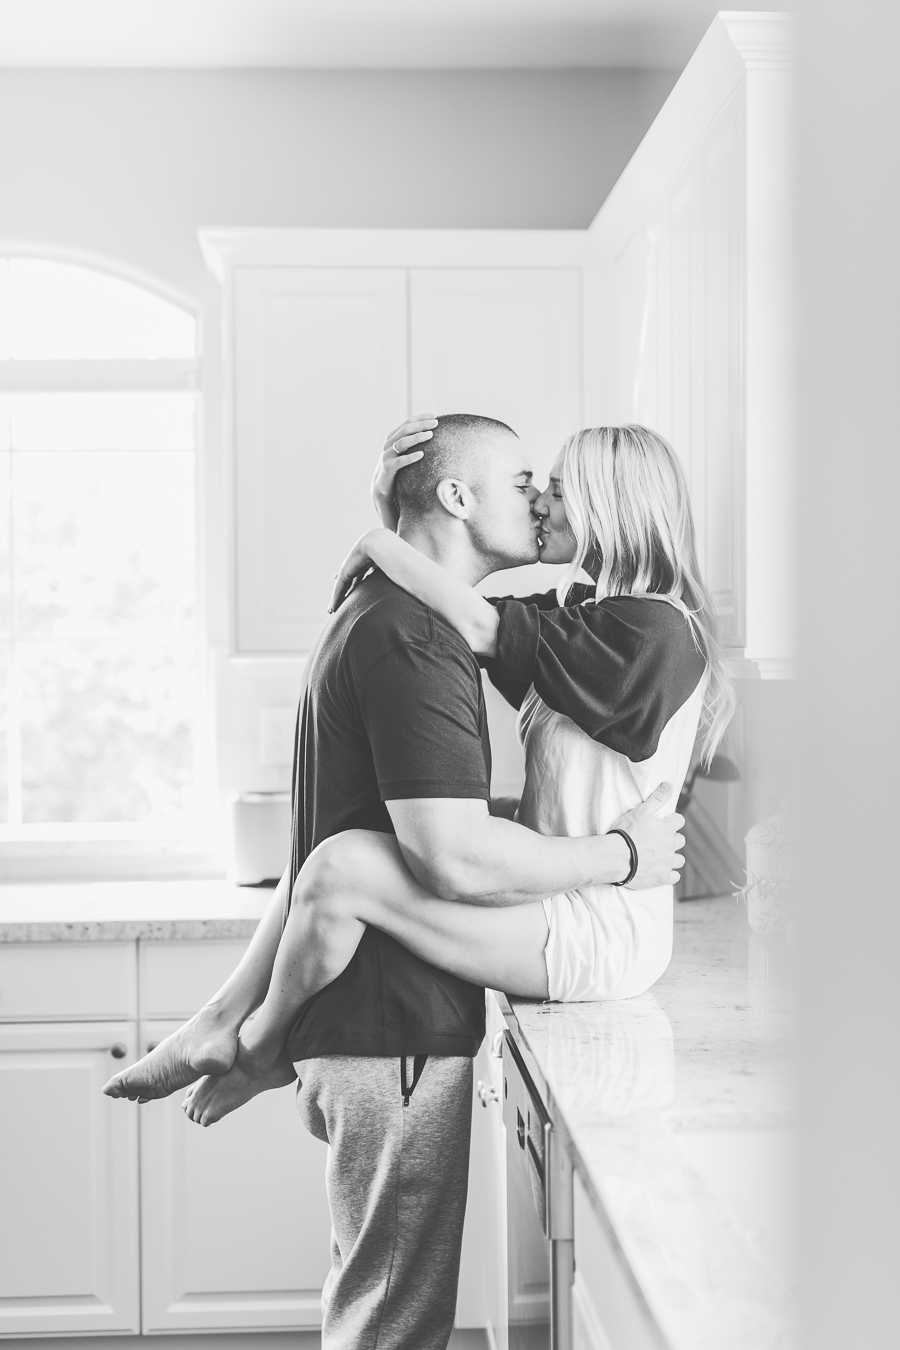 kisses on the kitchen counter